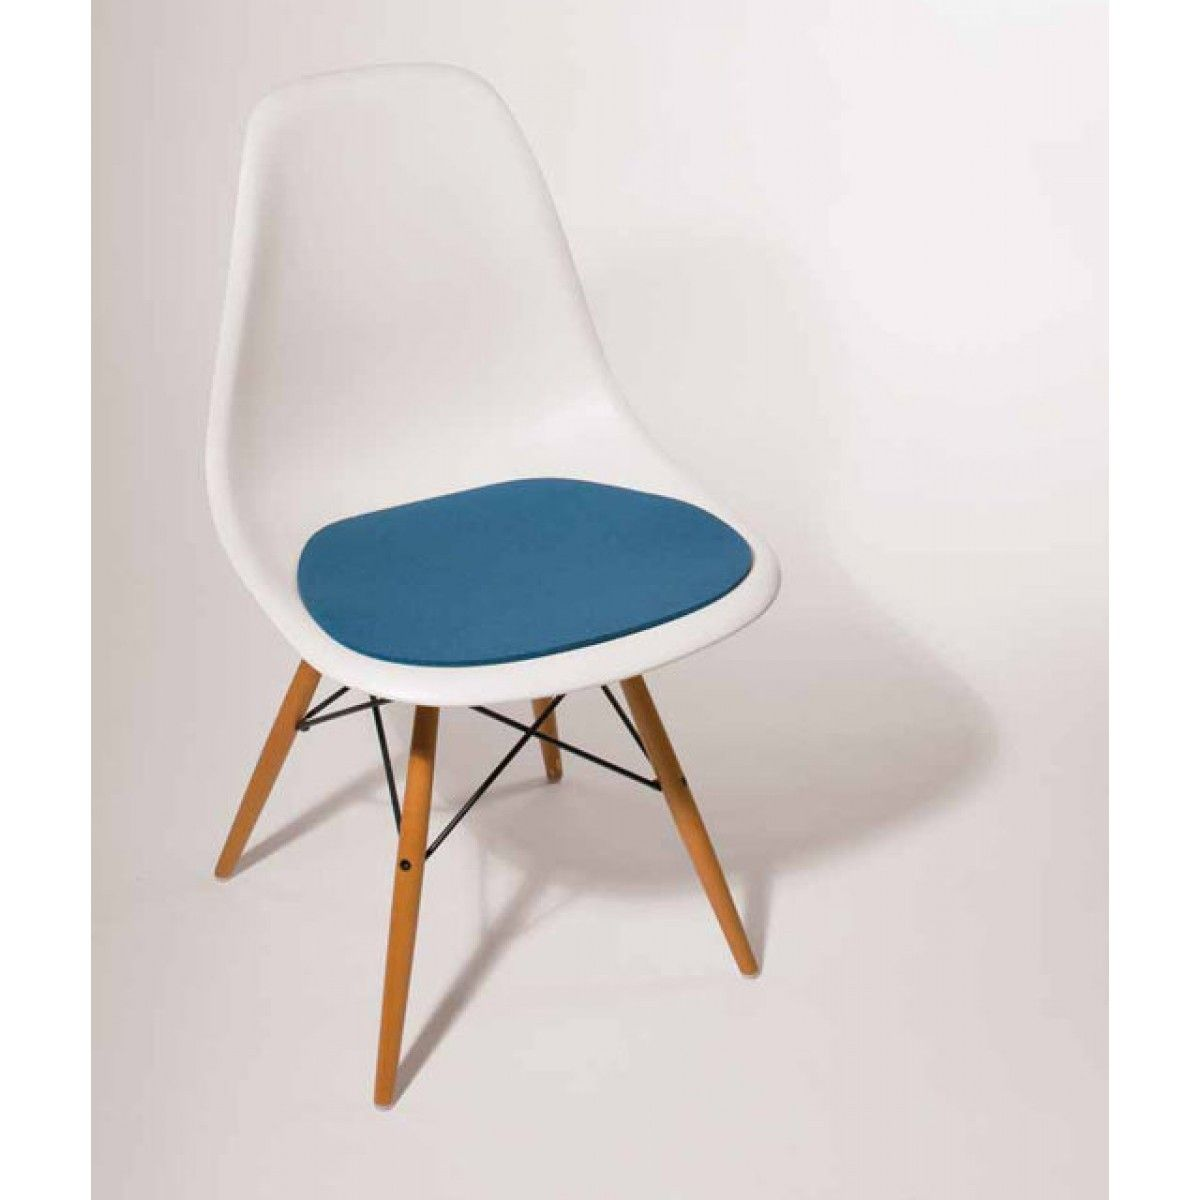 Chairs Berlin seat cushion felt cushion eames side chairs dsr dsw parkhaus